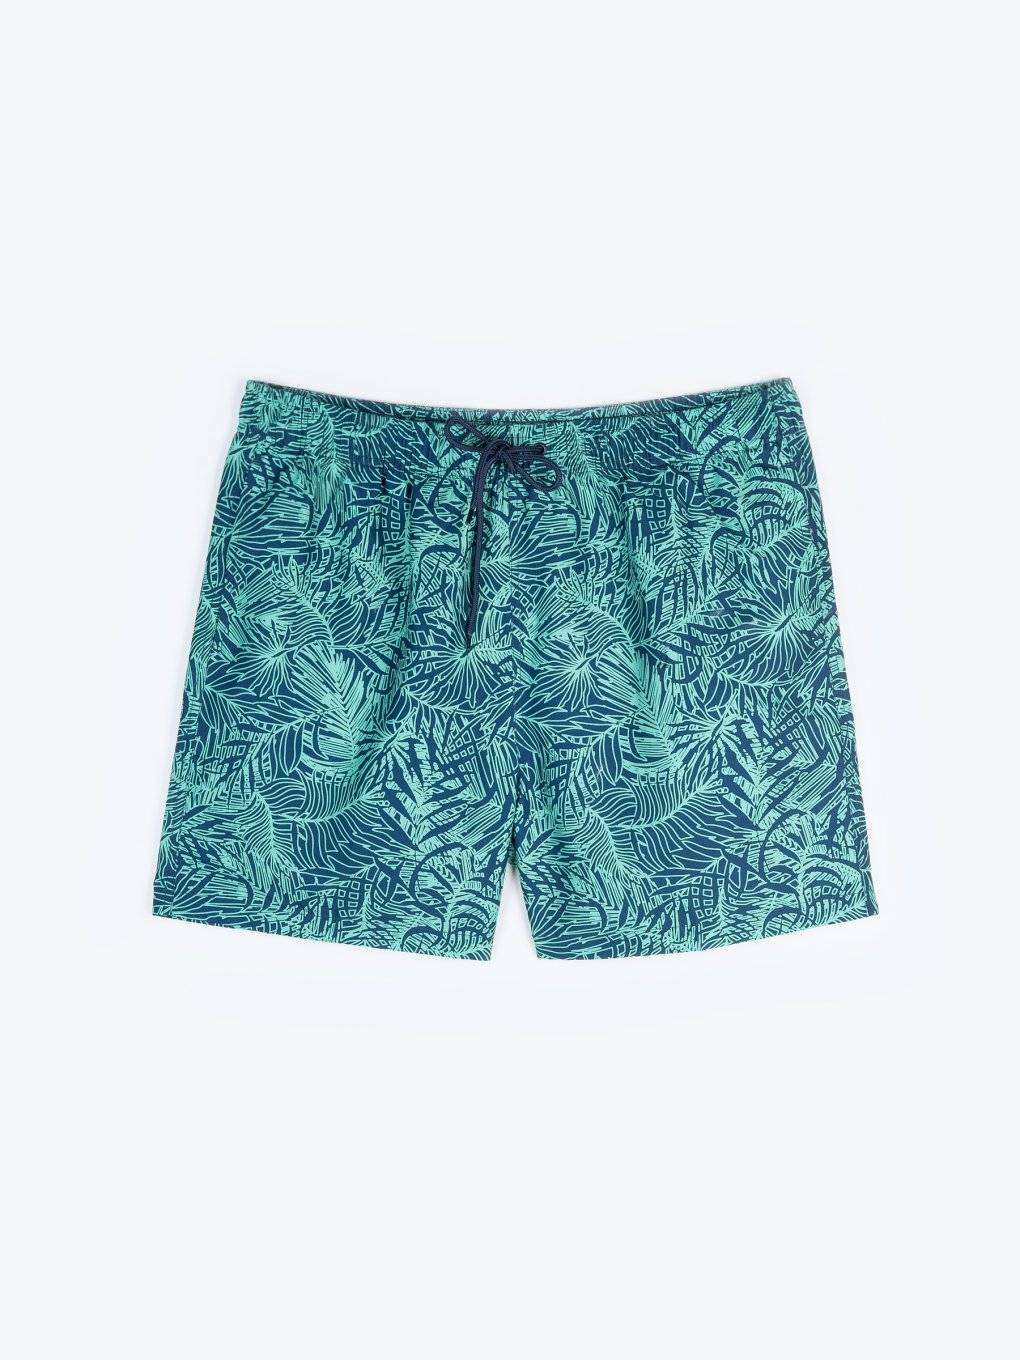 Swim shorts with floral print